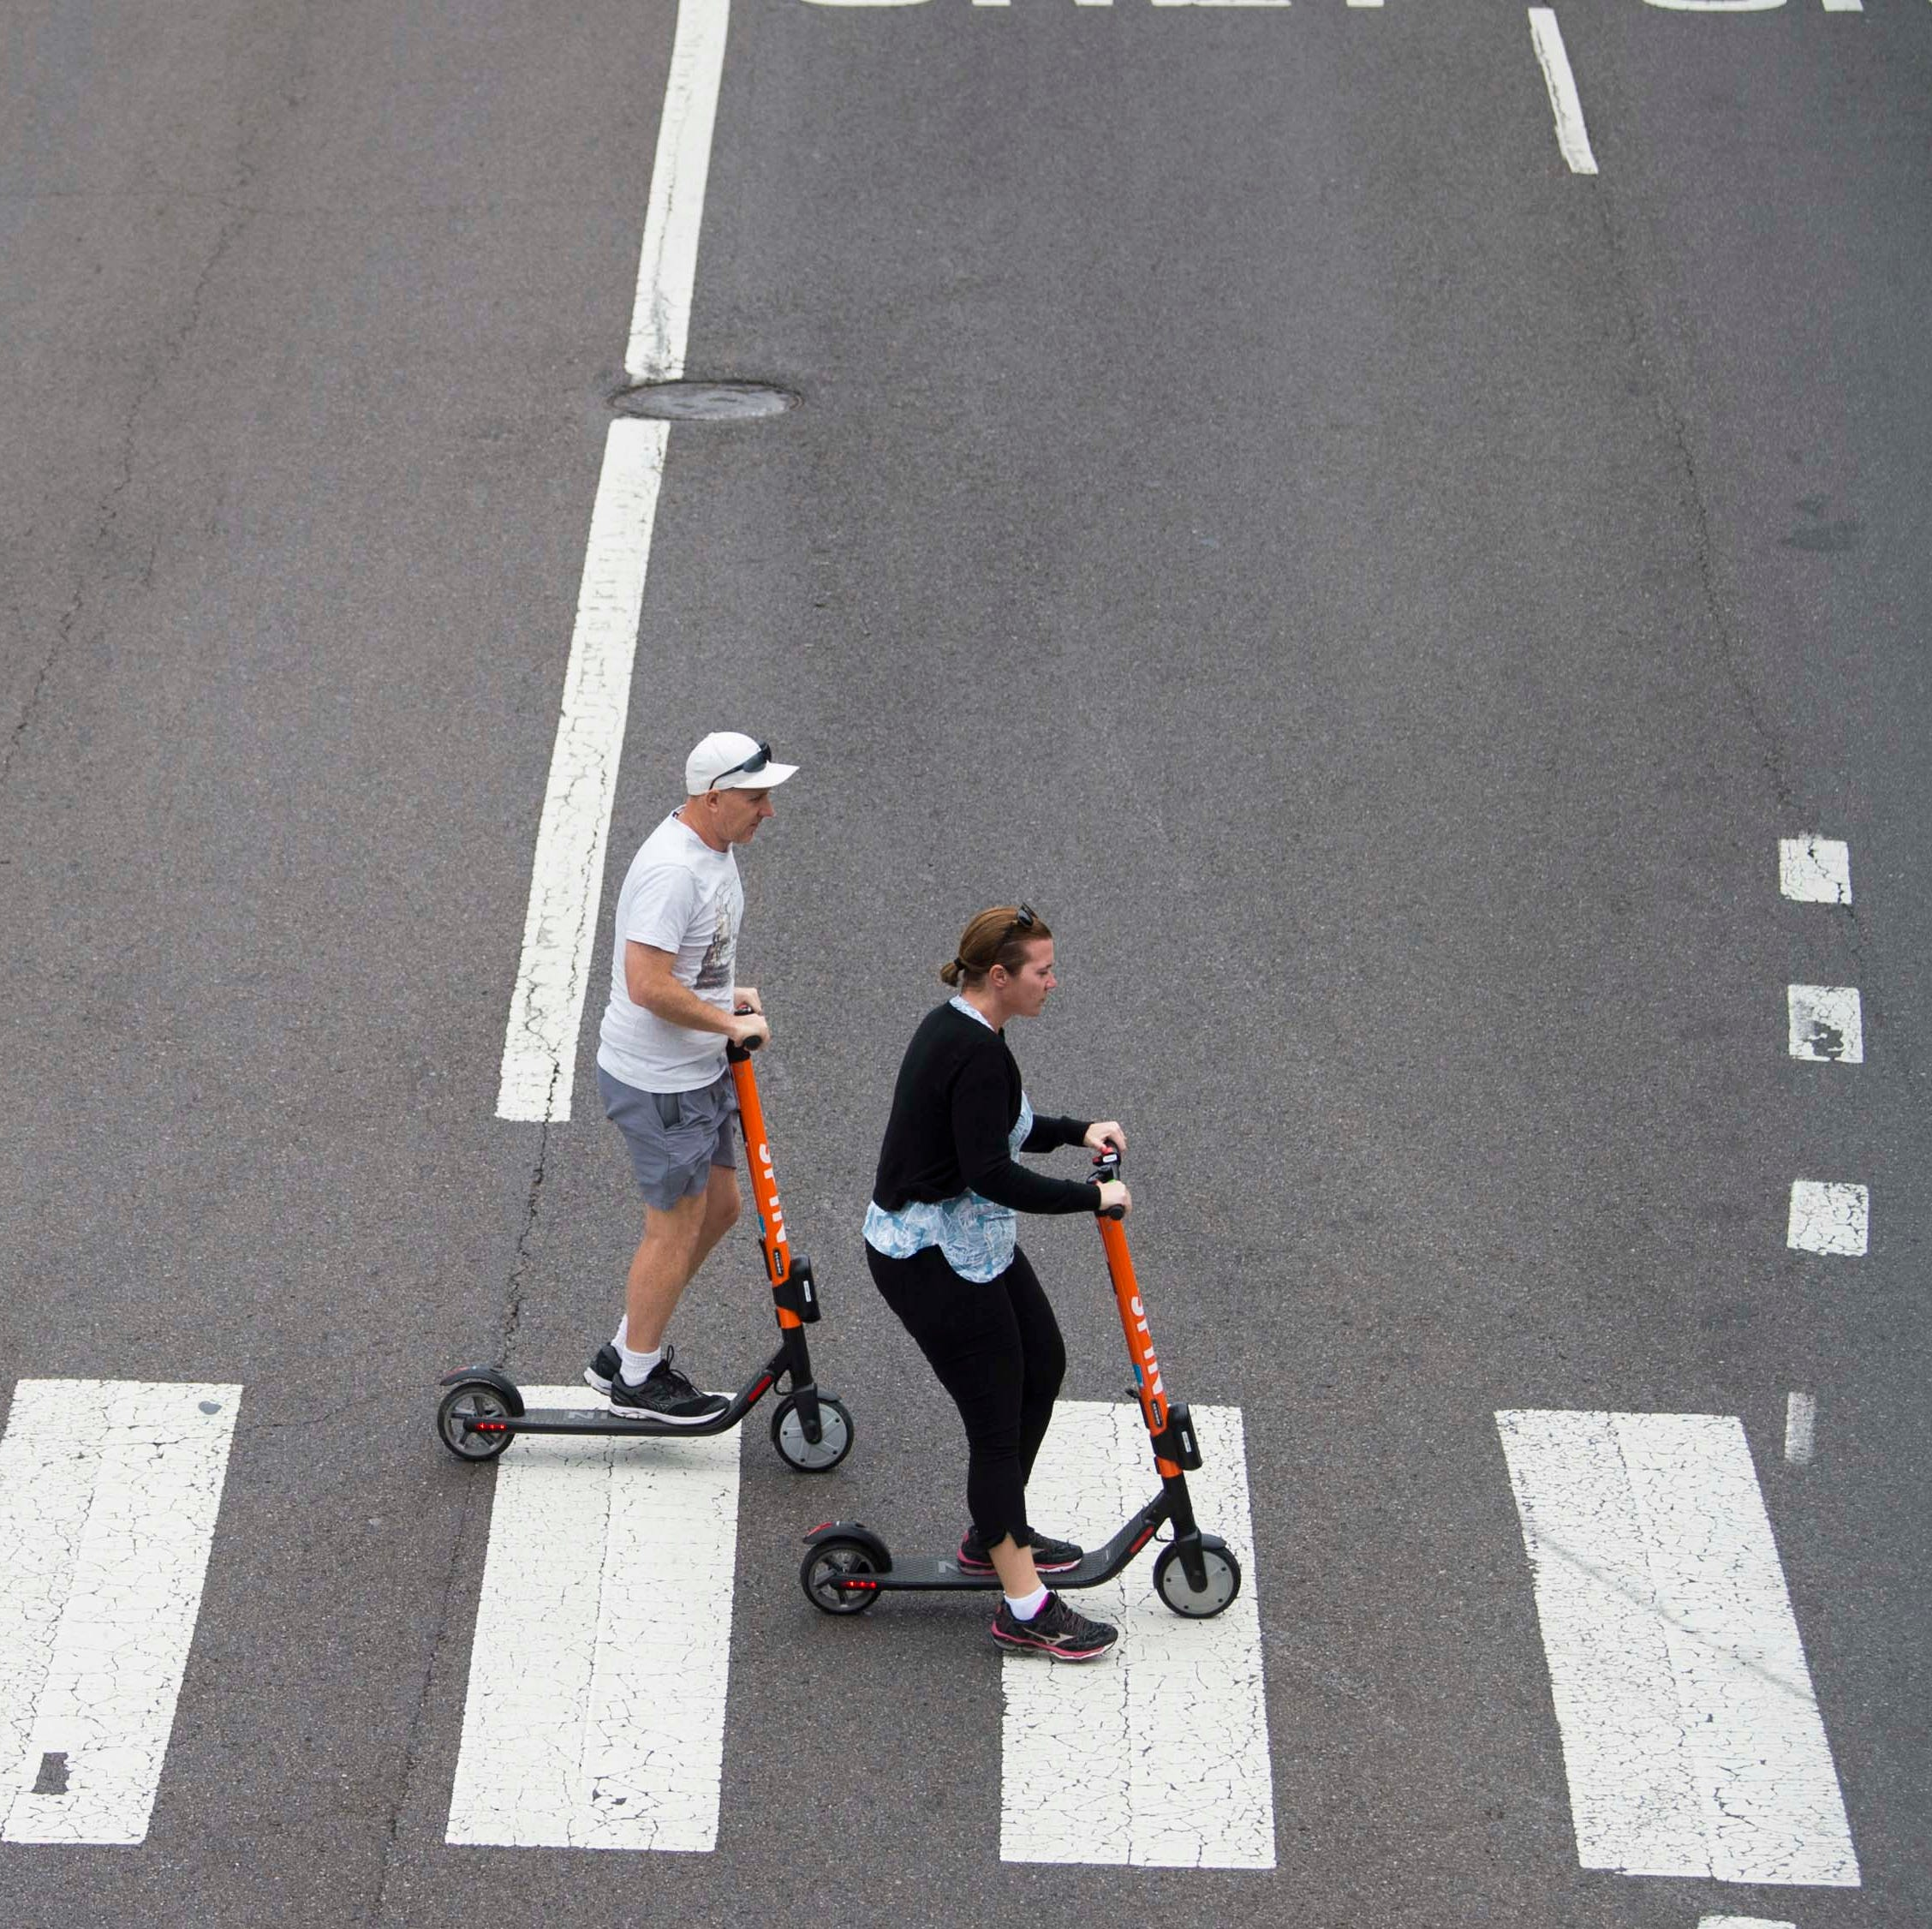 Knoxville scooters: 7,000 trips in Week 1, but how many follow the rules?